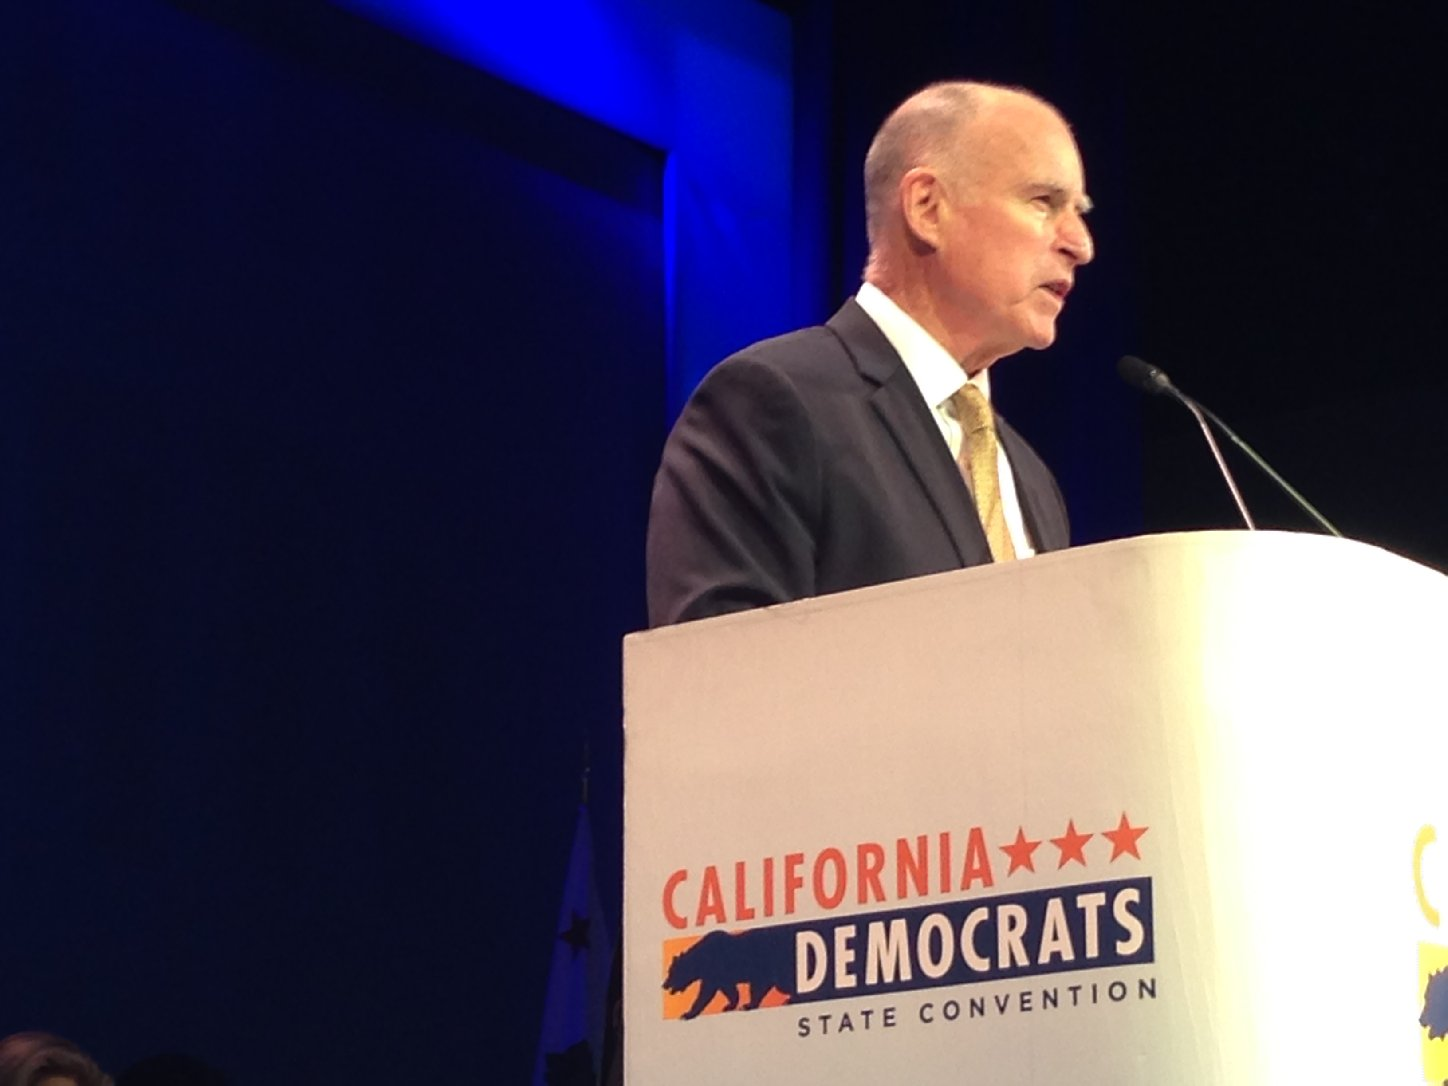 Gov. Jerry Brown speaks to the California Democrats' annual convention in Los Angeles. (Scott Detrow / KQED)